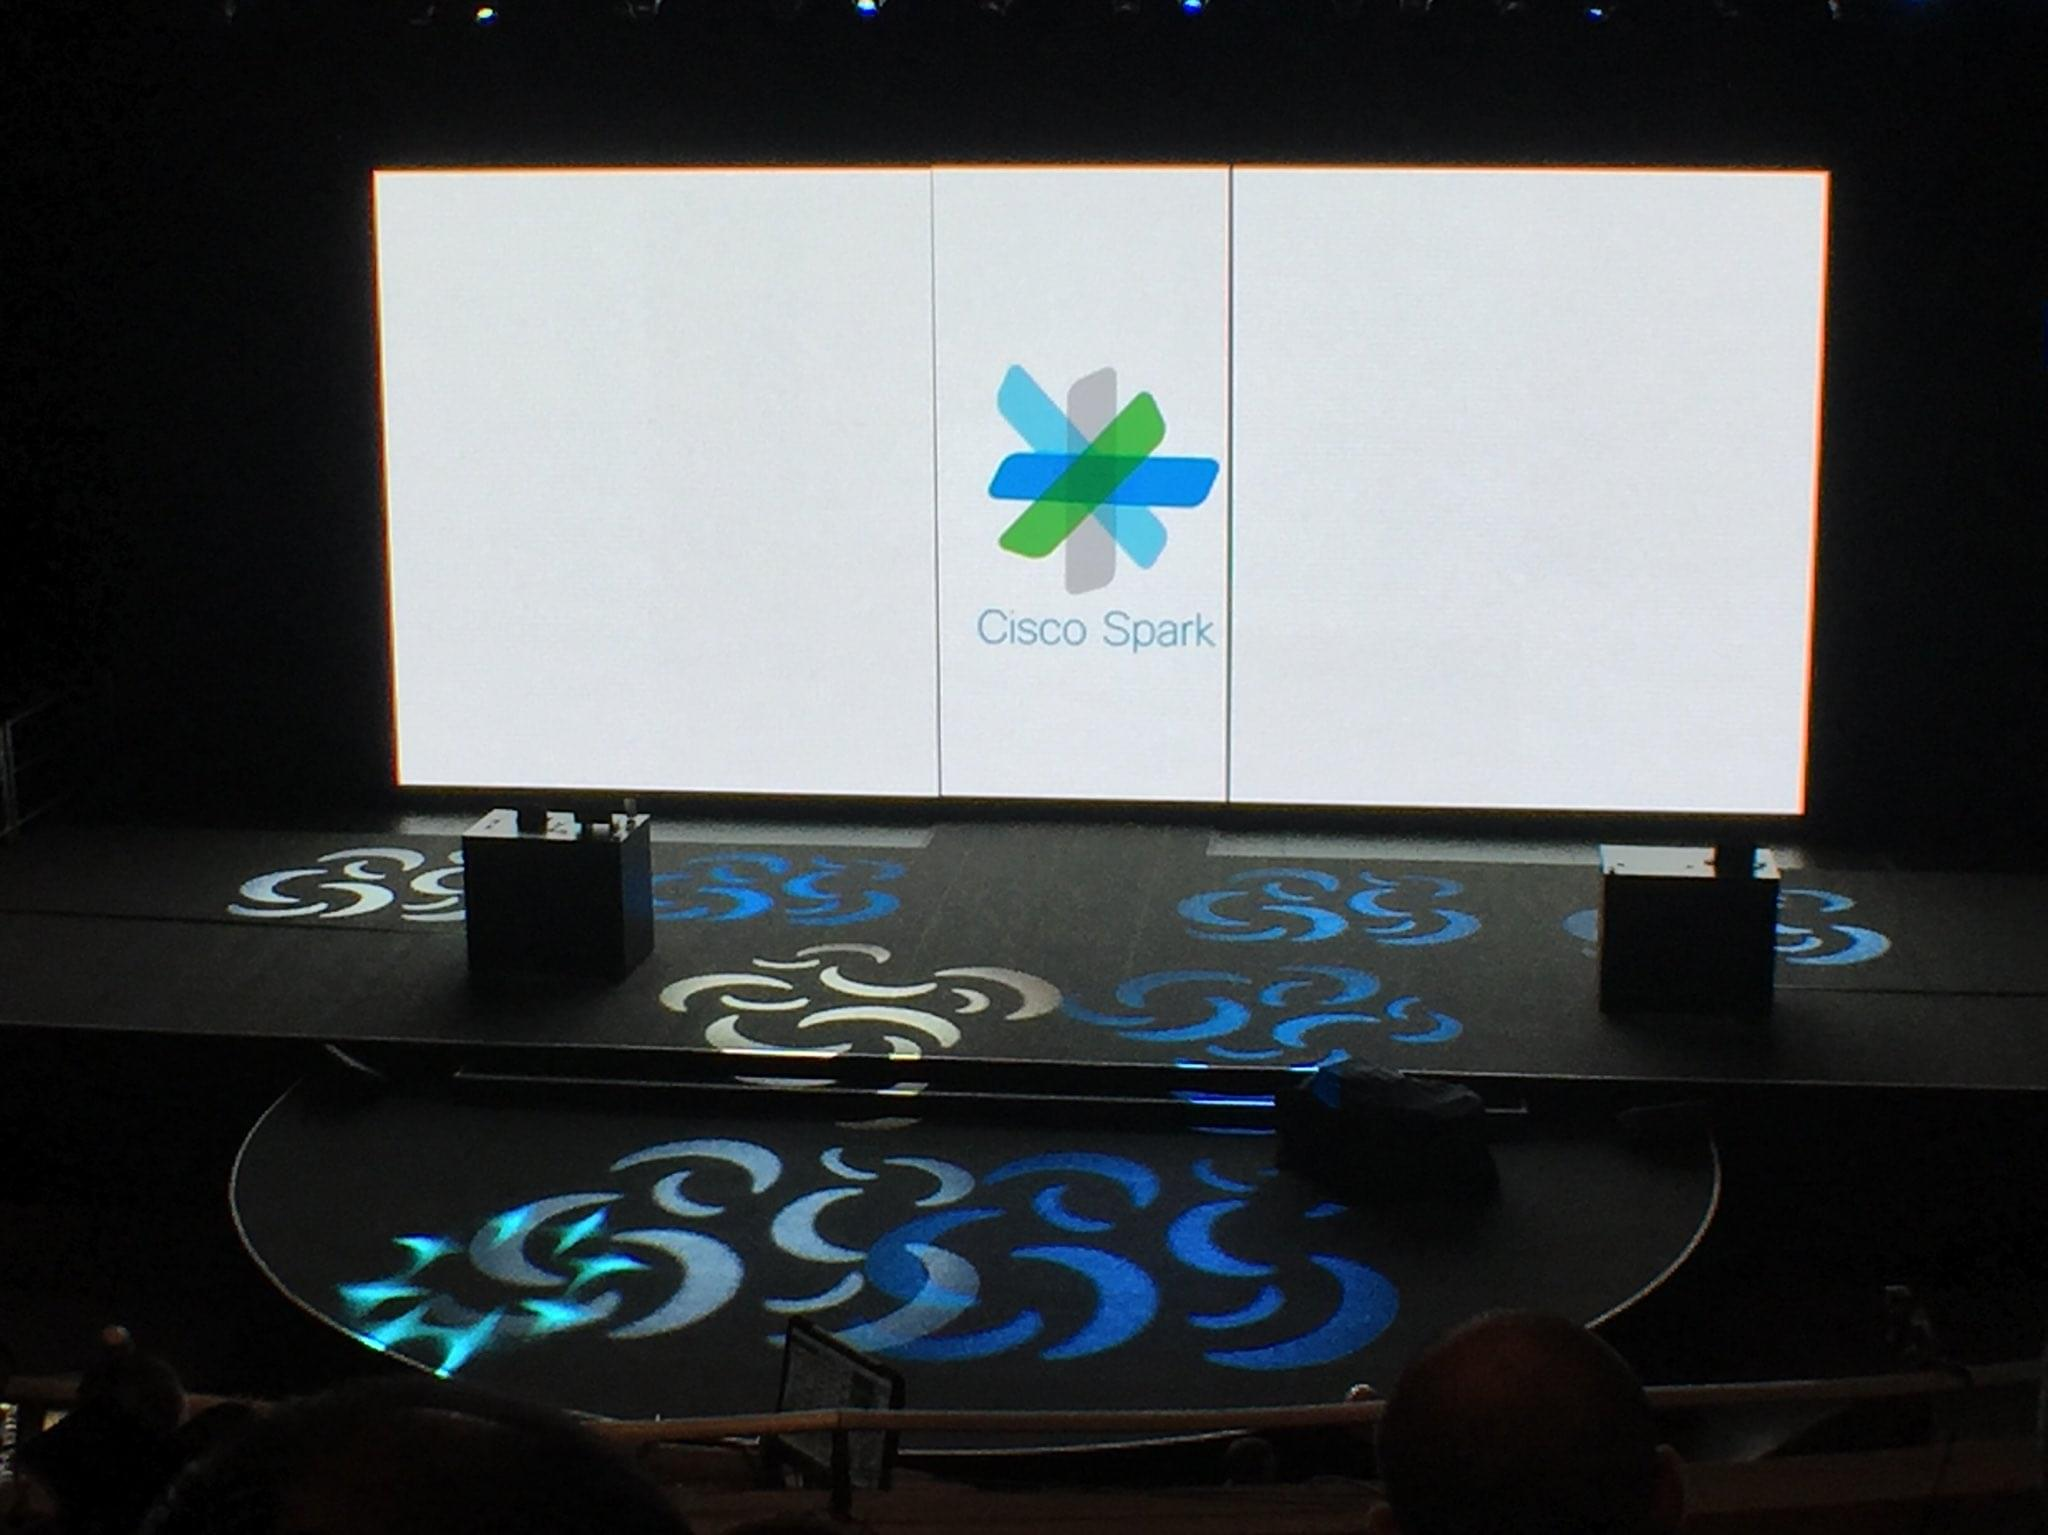 Cisco Spark Board Hands-on First Impressions: It's Not a Giant iPad!